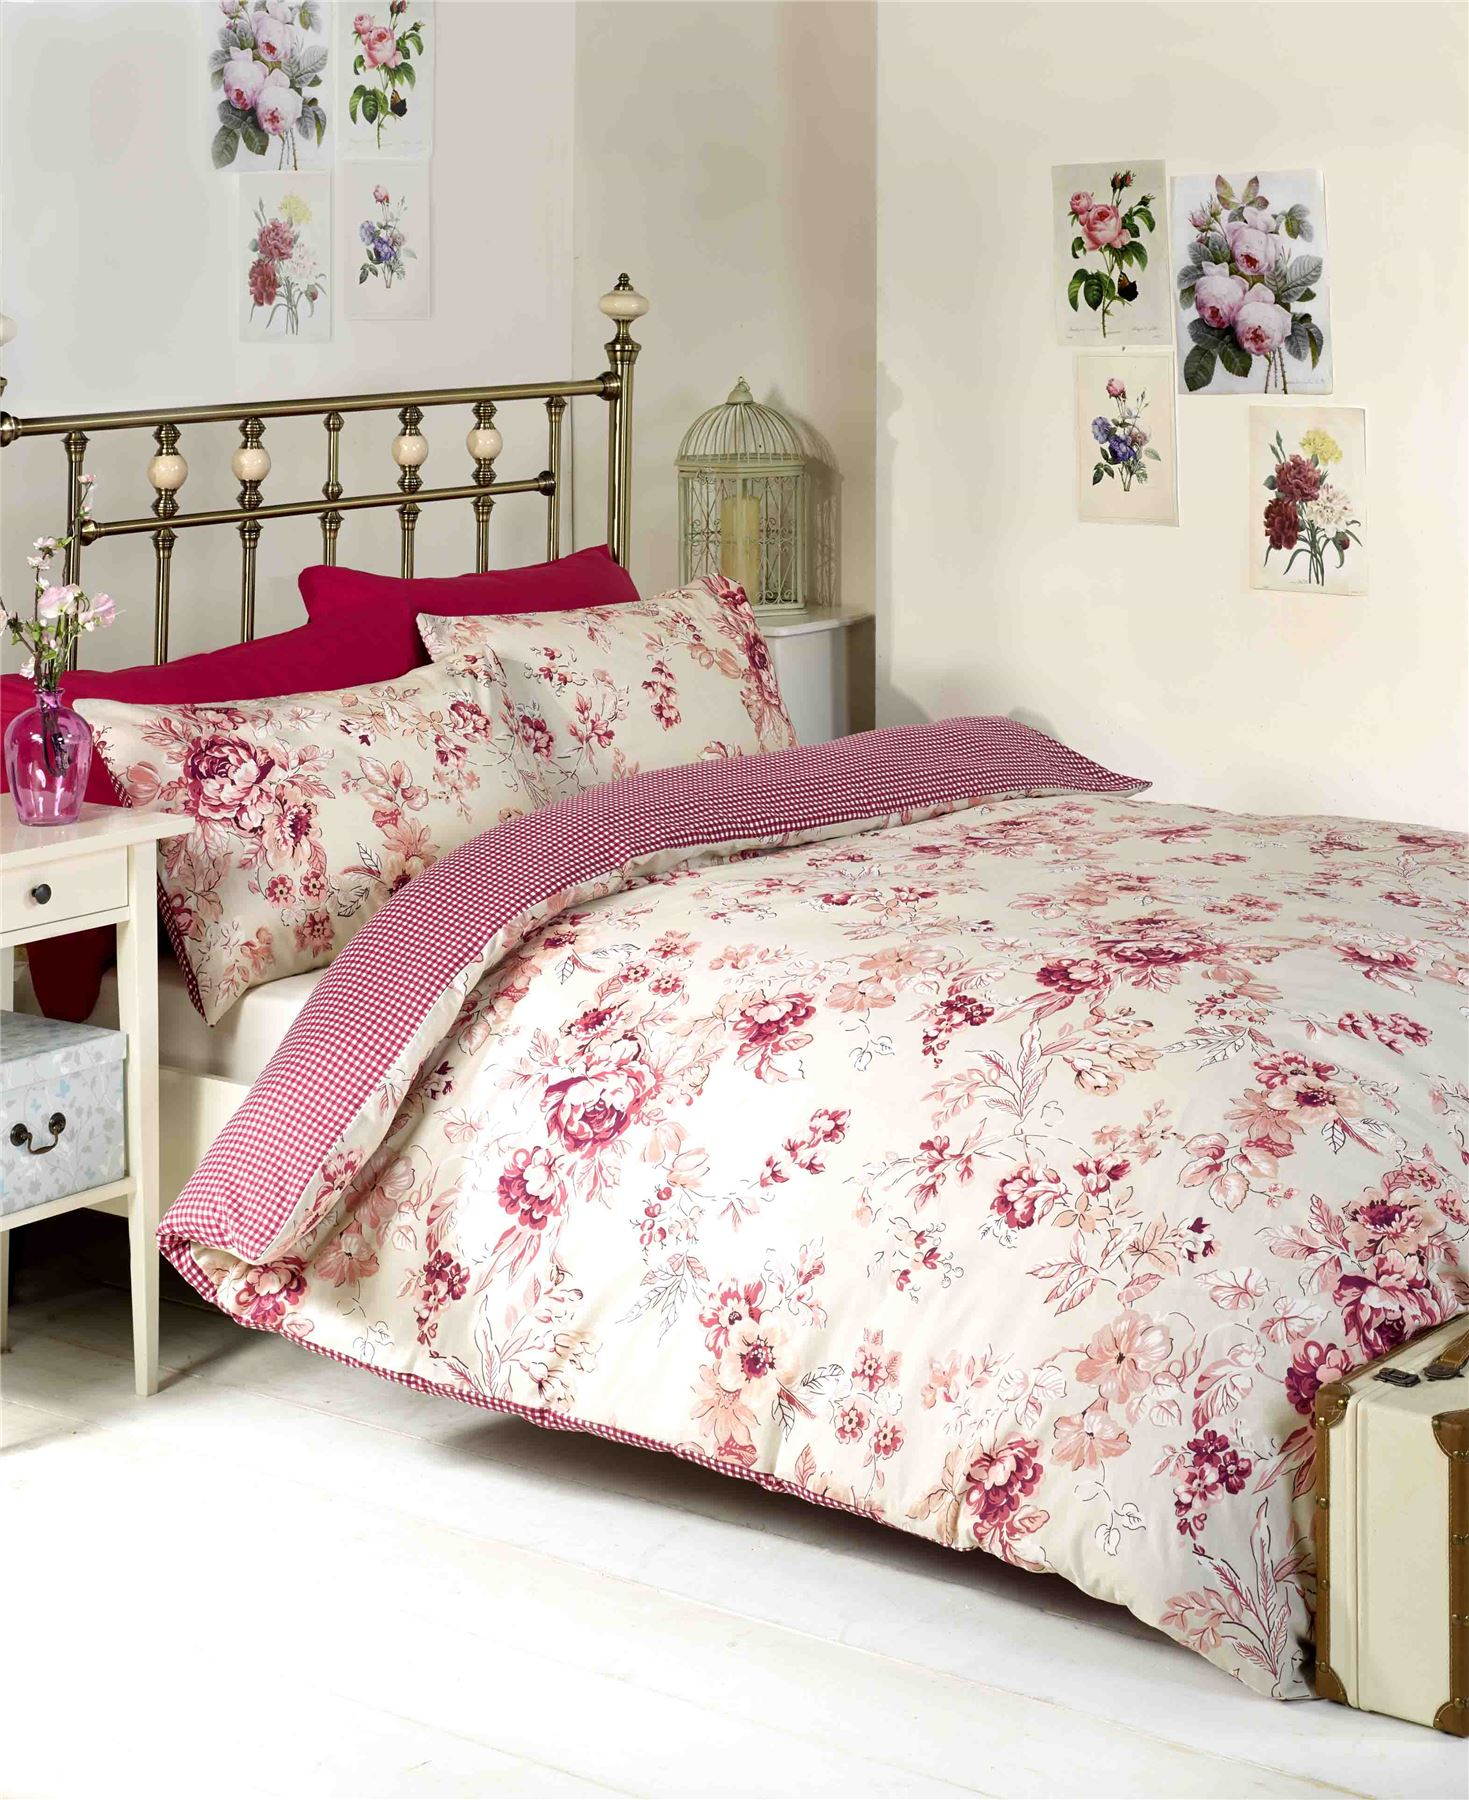 rosa chelsea shabby chic floral blumen wende bettbezug. Black Bedroom Furniture Sets. Home Design Ideas